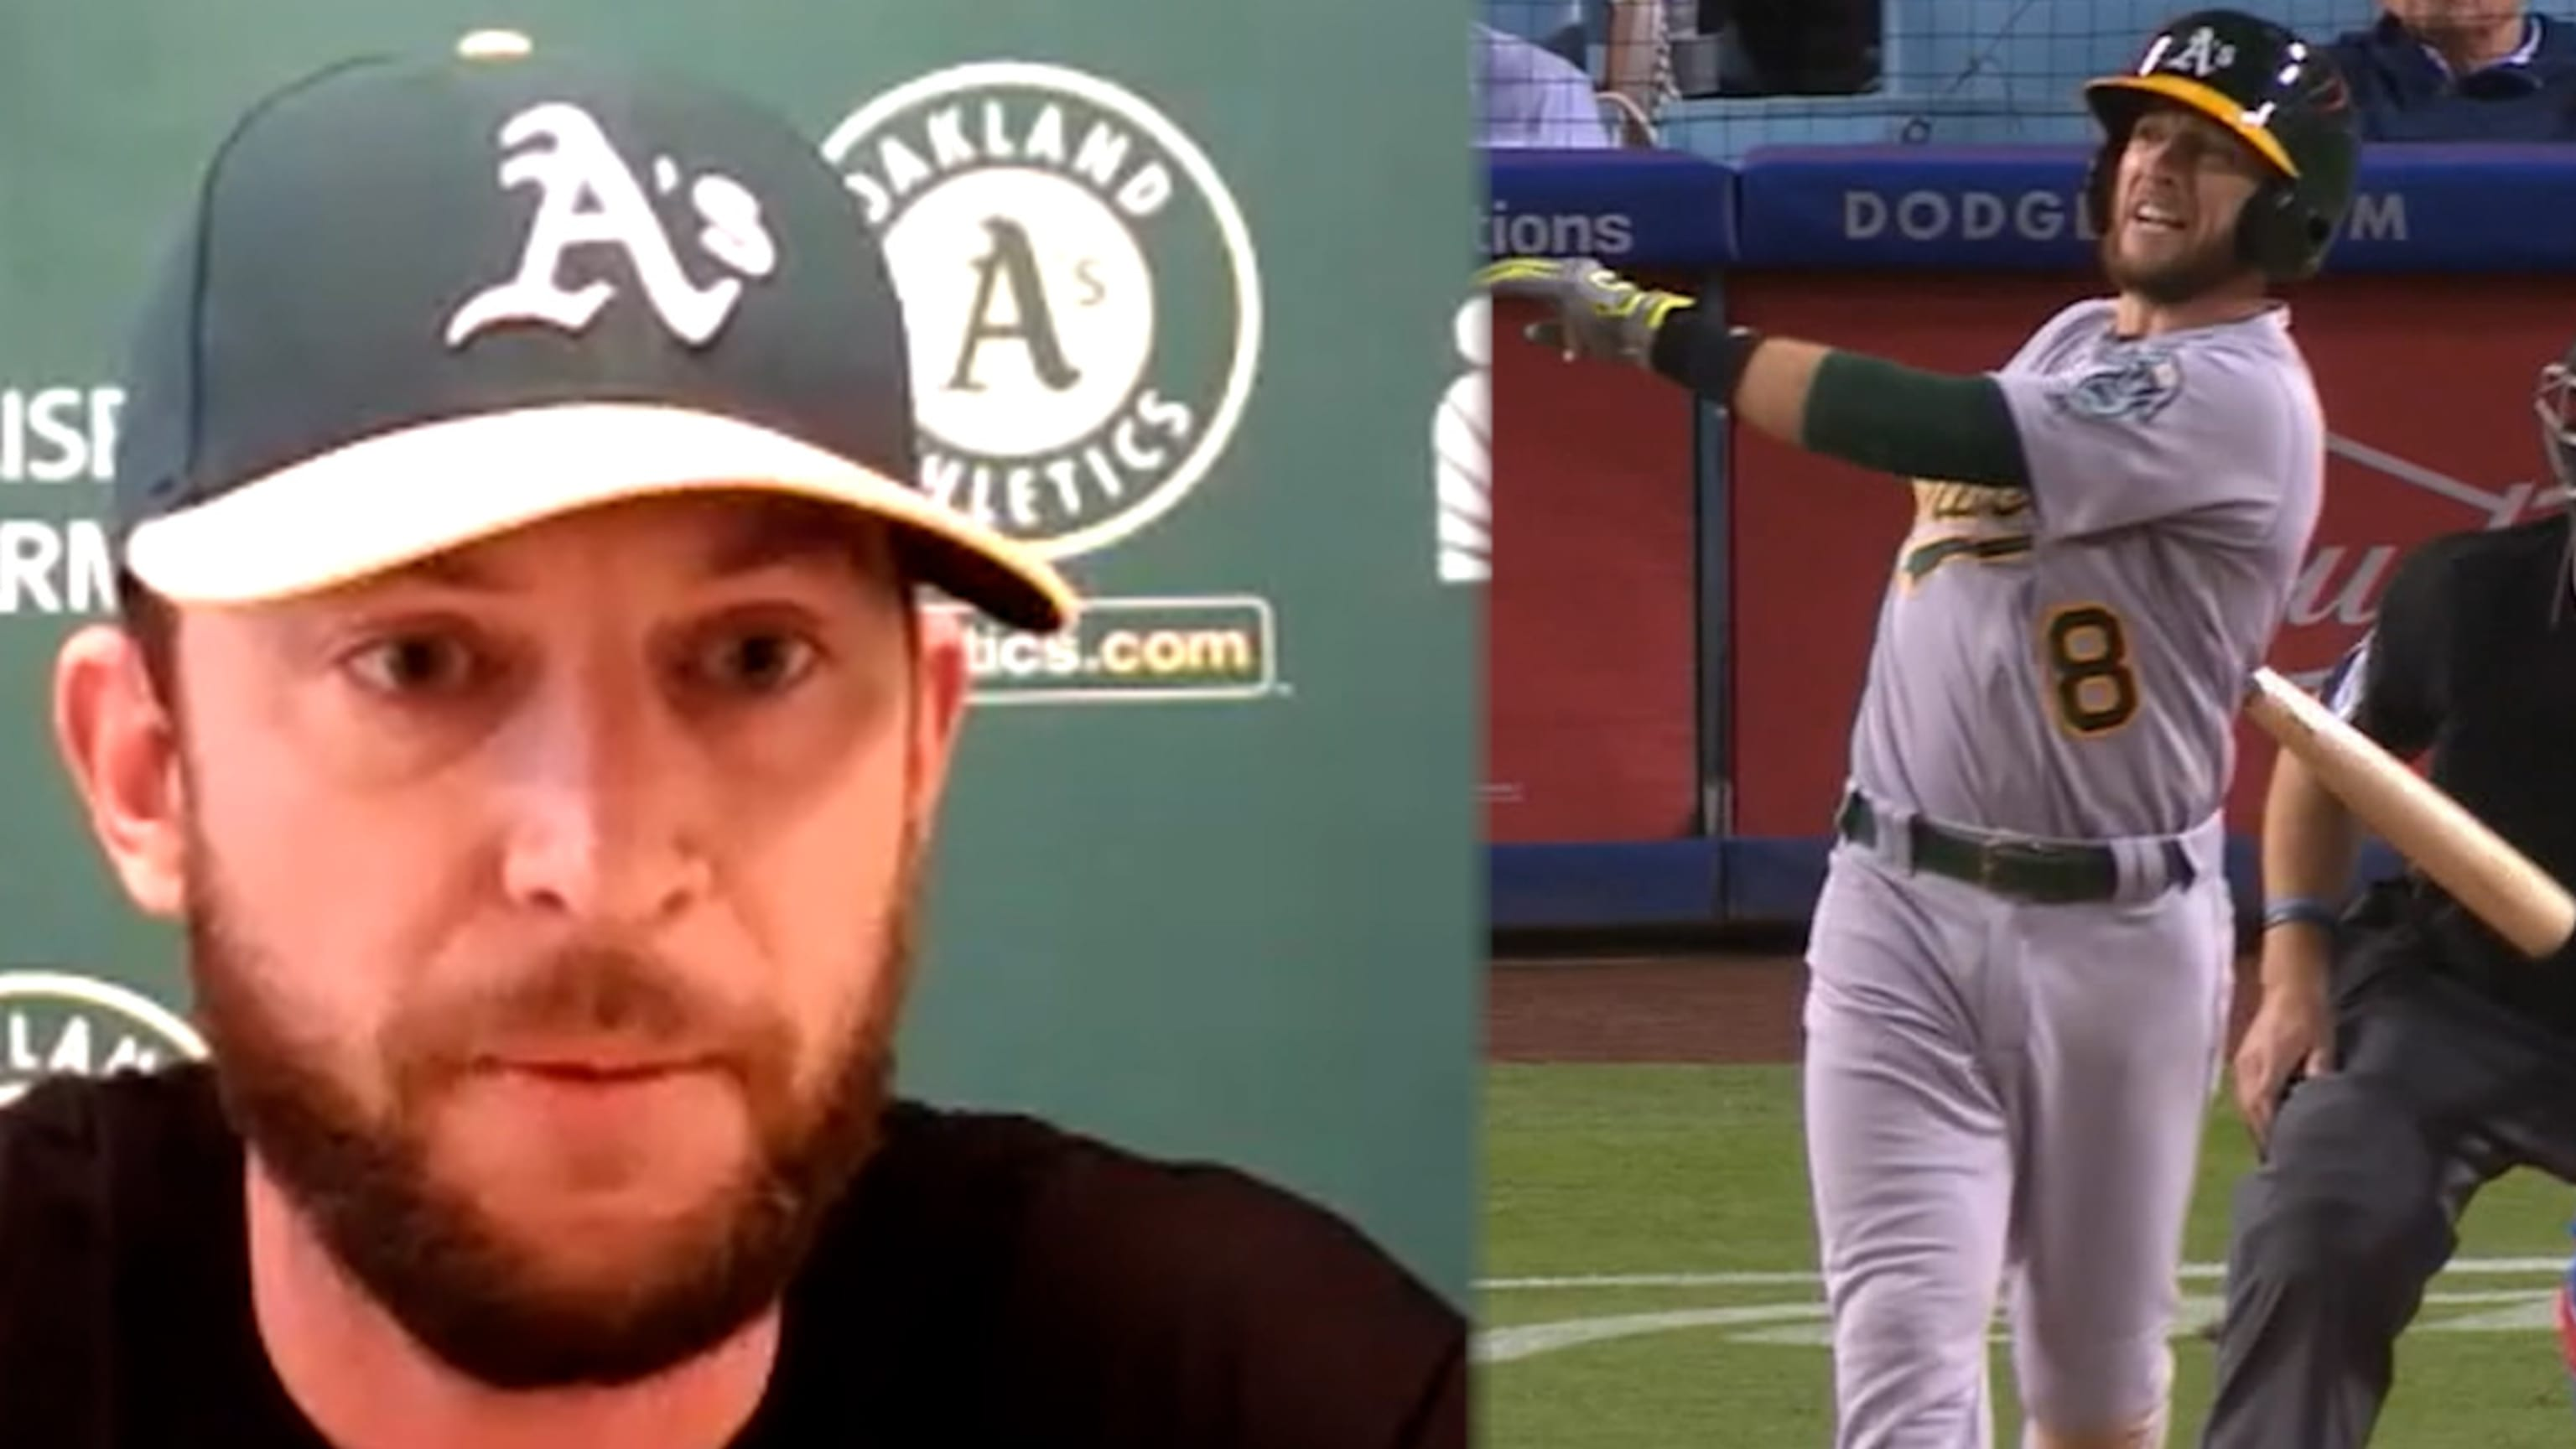 Jed Lowrie gets first start in return to A's